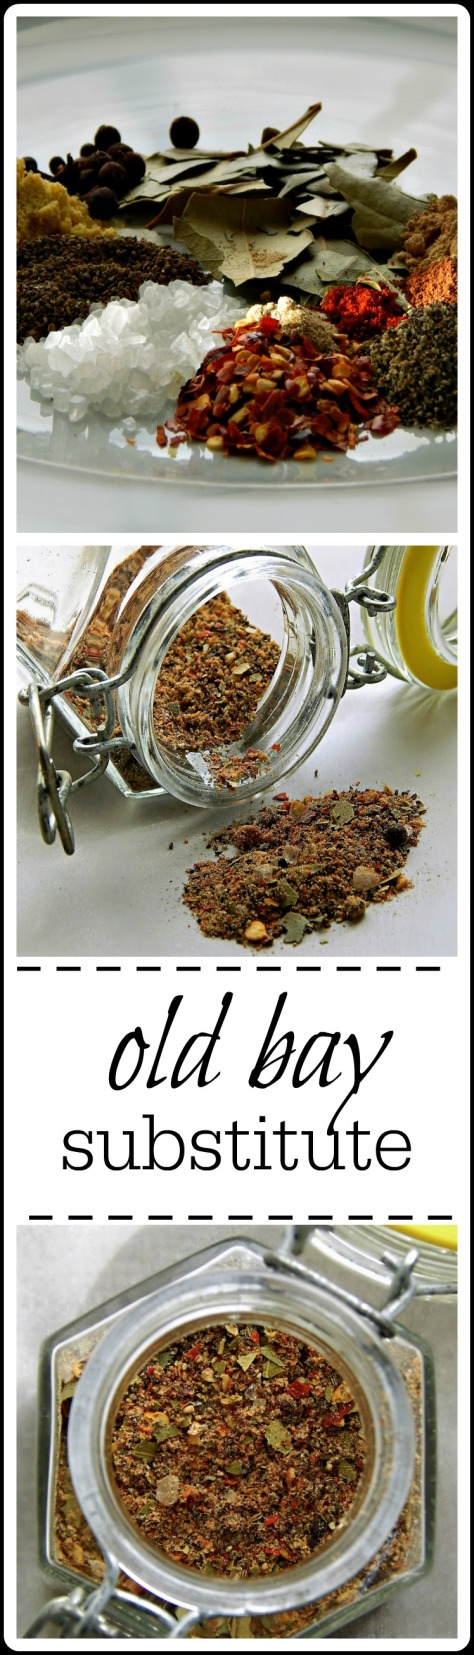 Old Bay Substitute